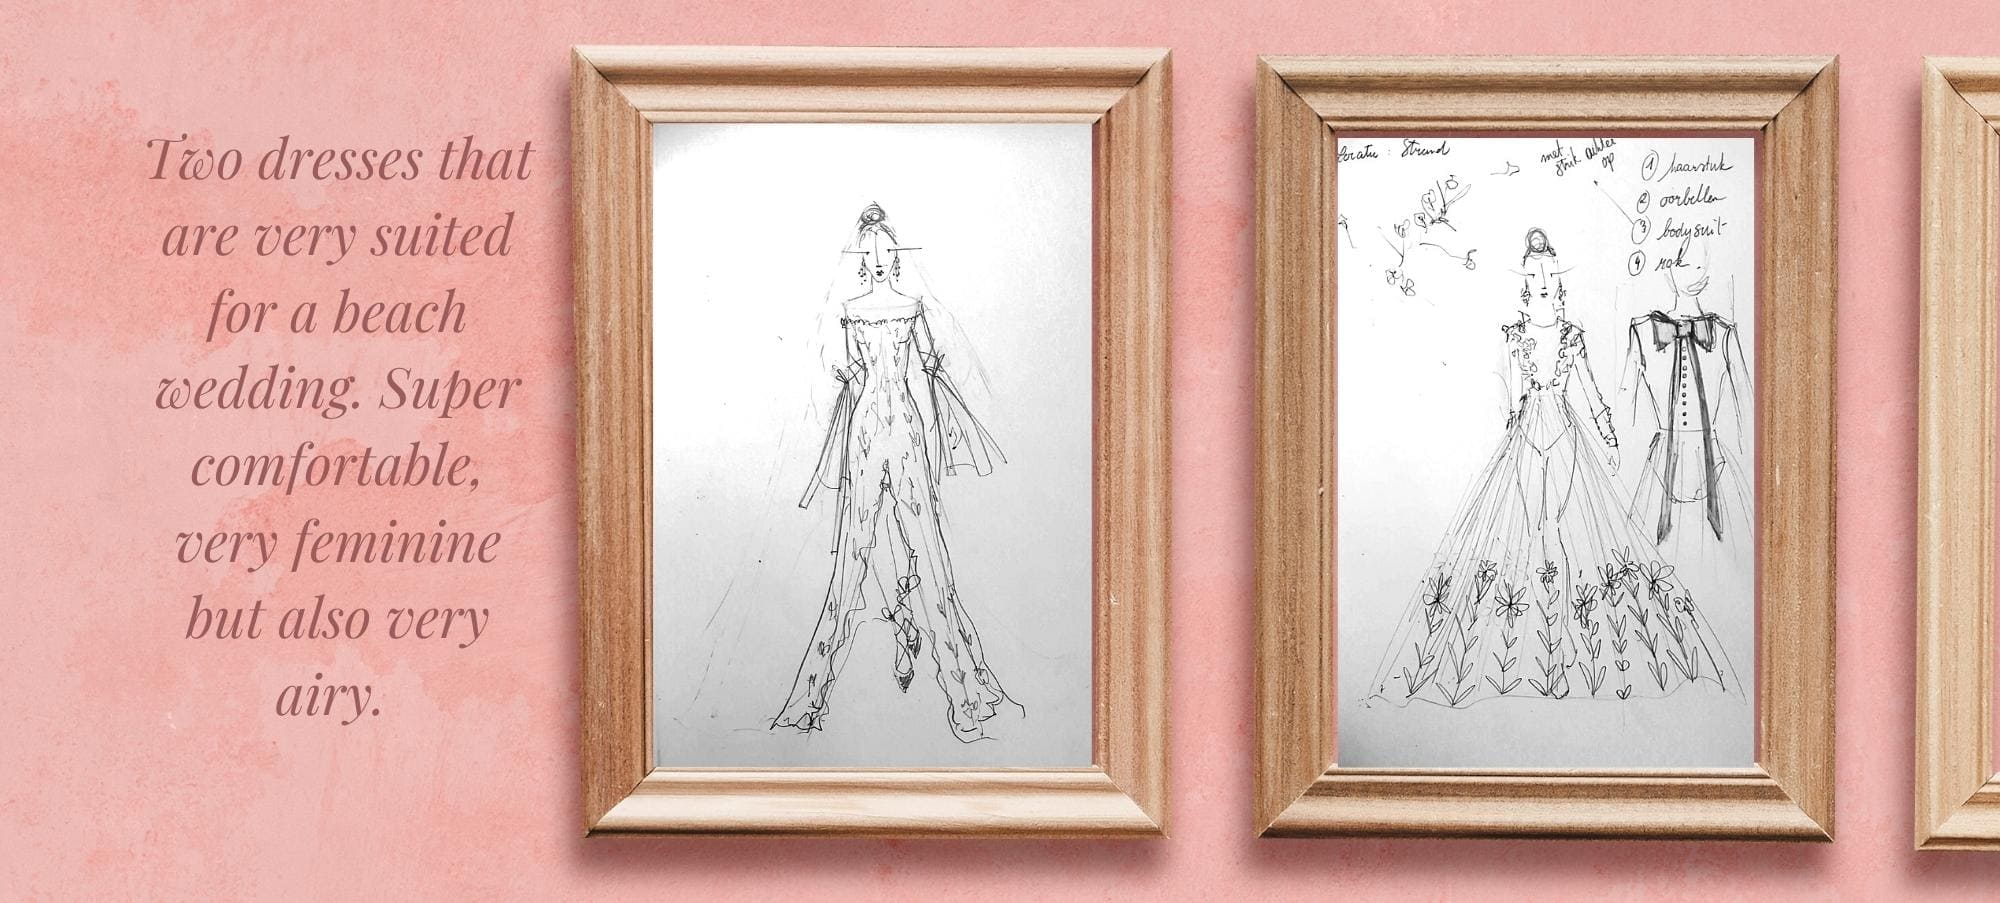 Drawings of two dresses for a beach wedding